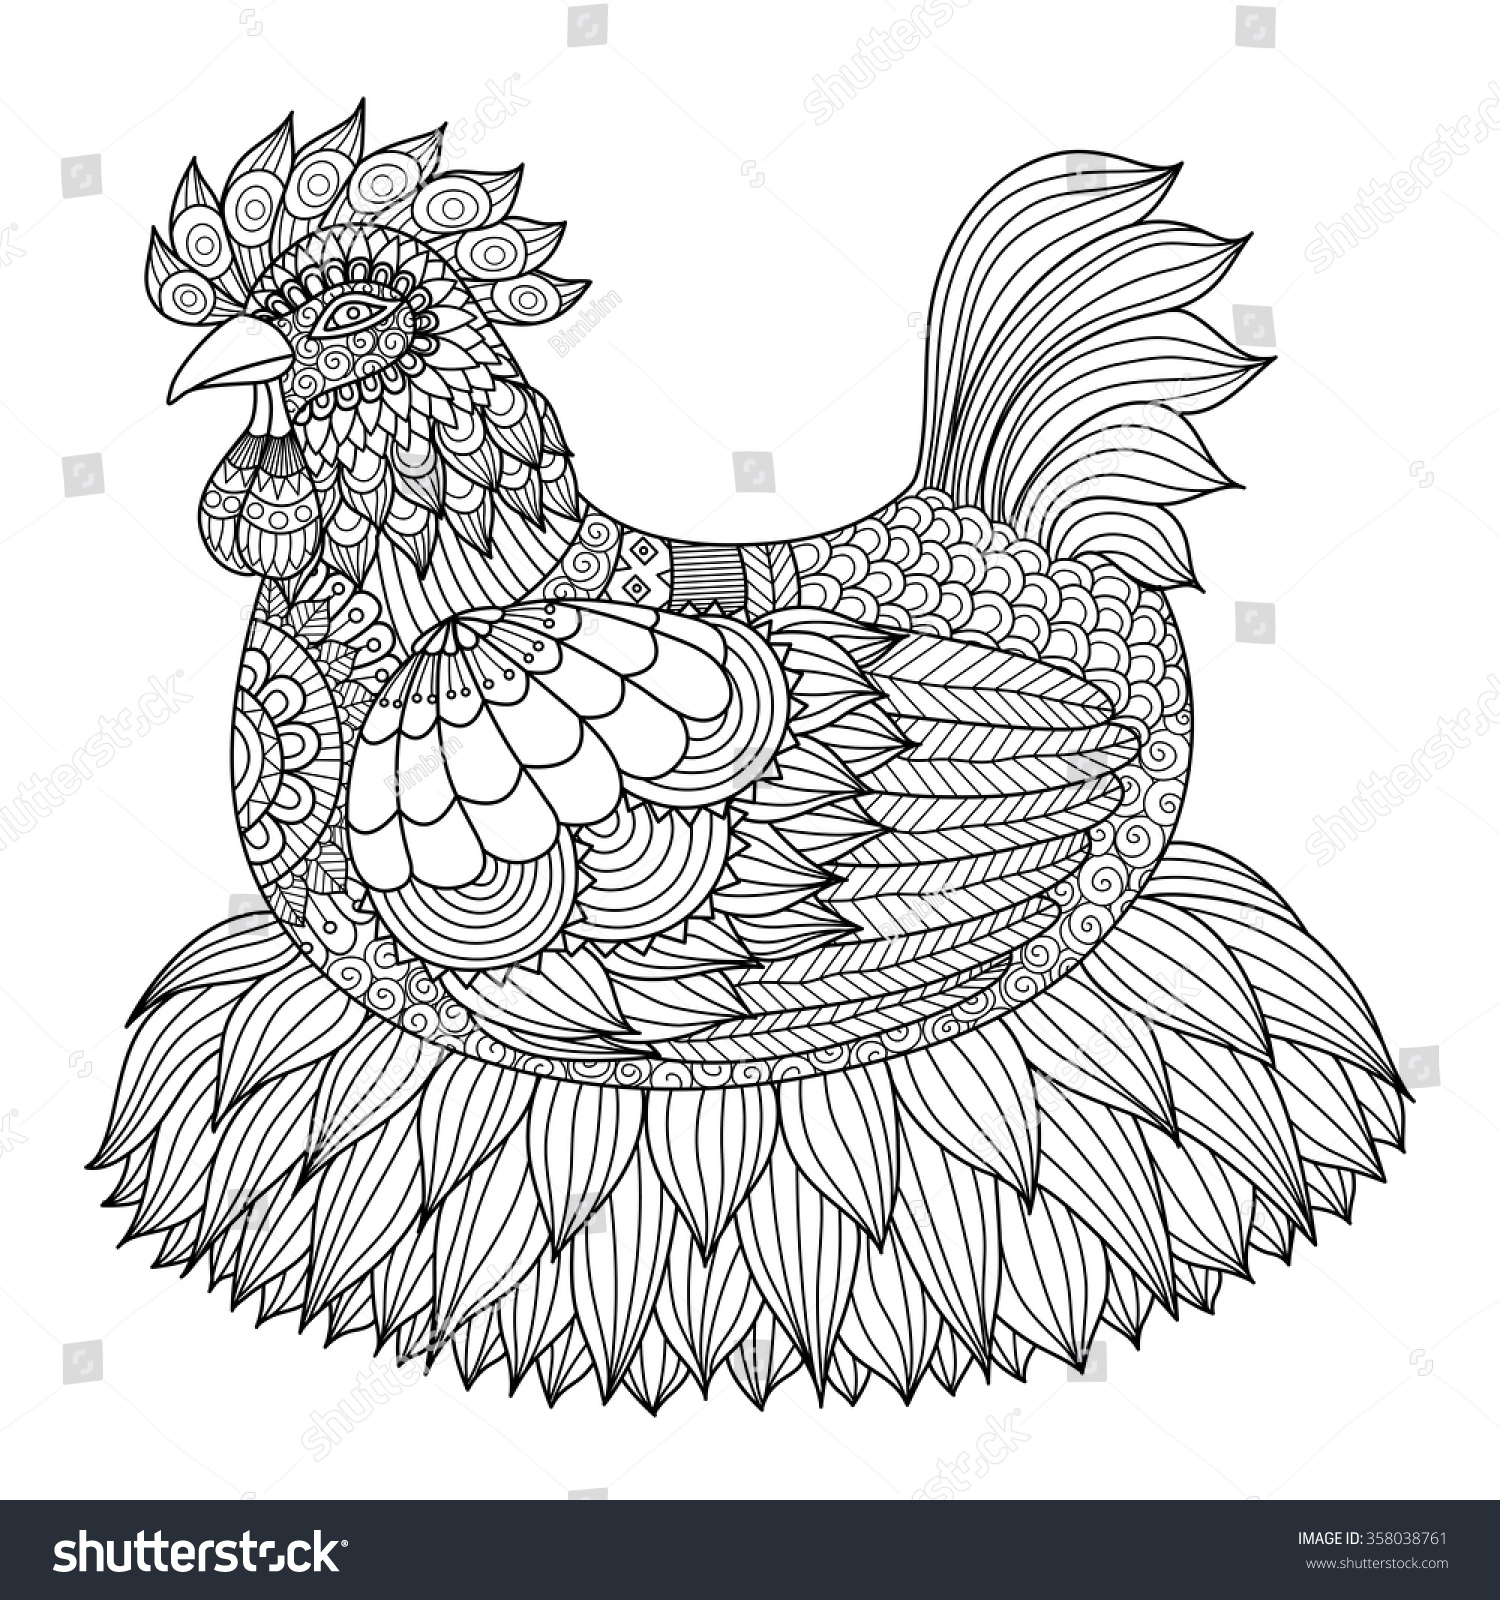 royalty free hand drawn zentangle chicken for u2026 358038761 stock